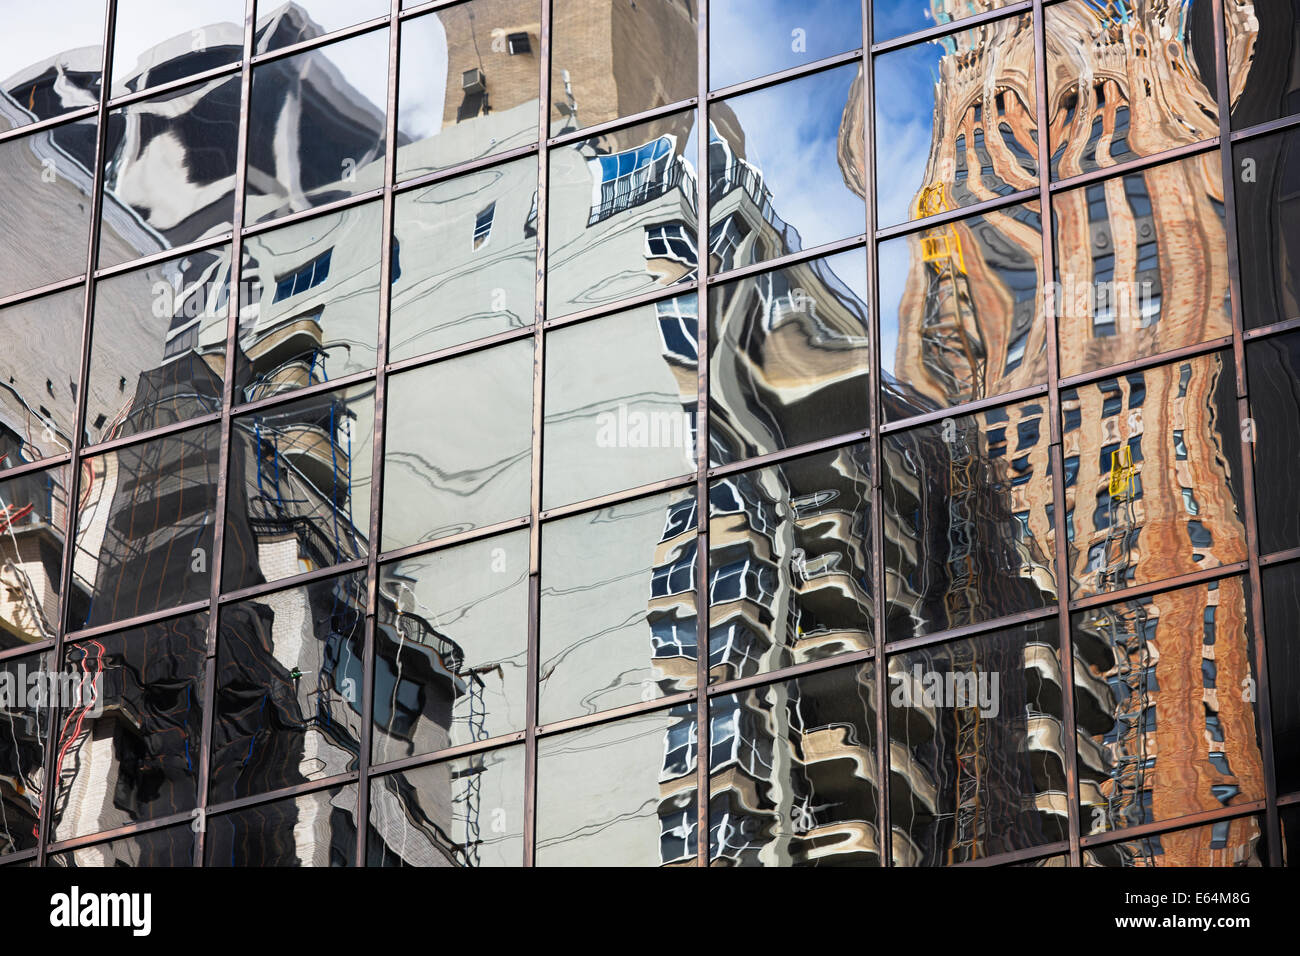 Distorted reflections of high-rise buildings in a glass wall of another highrise on Manhattan. New York, USA. Stock Photo